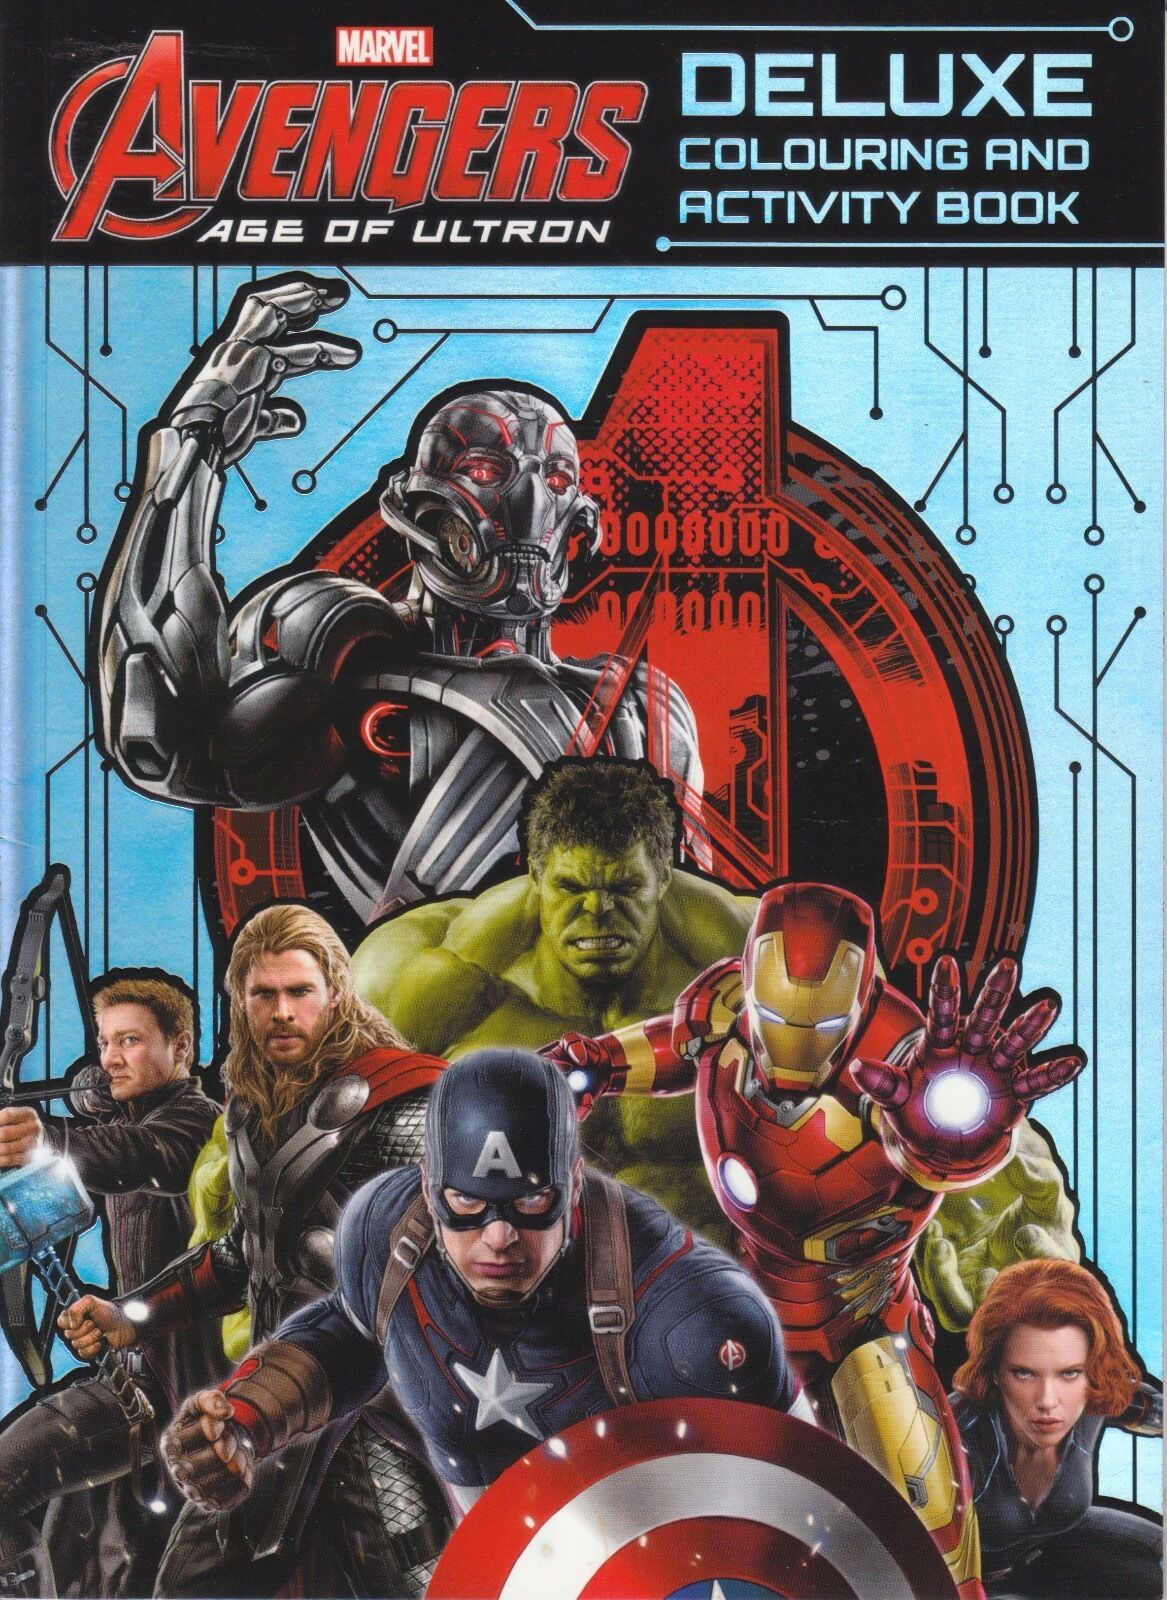 Marvel Avengers Age of Ultron - Deluxe Colouring and Activity Book ...